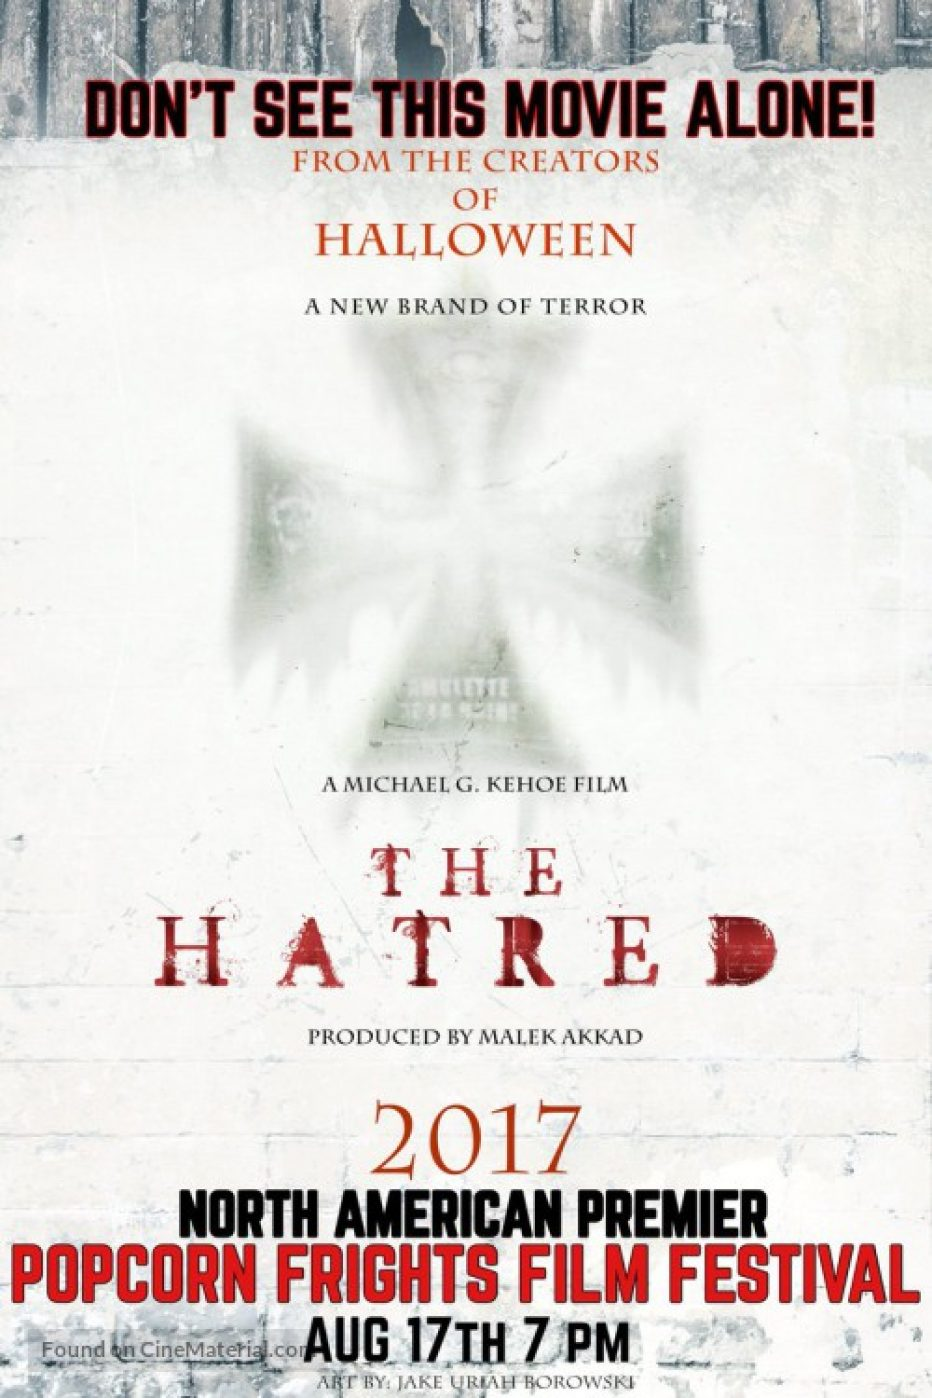 Coming Soon – The Hatred Out 12th September